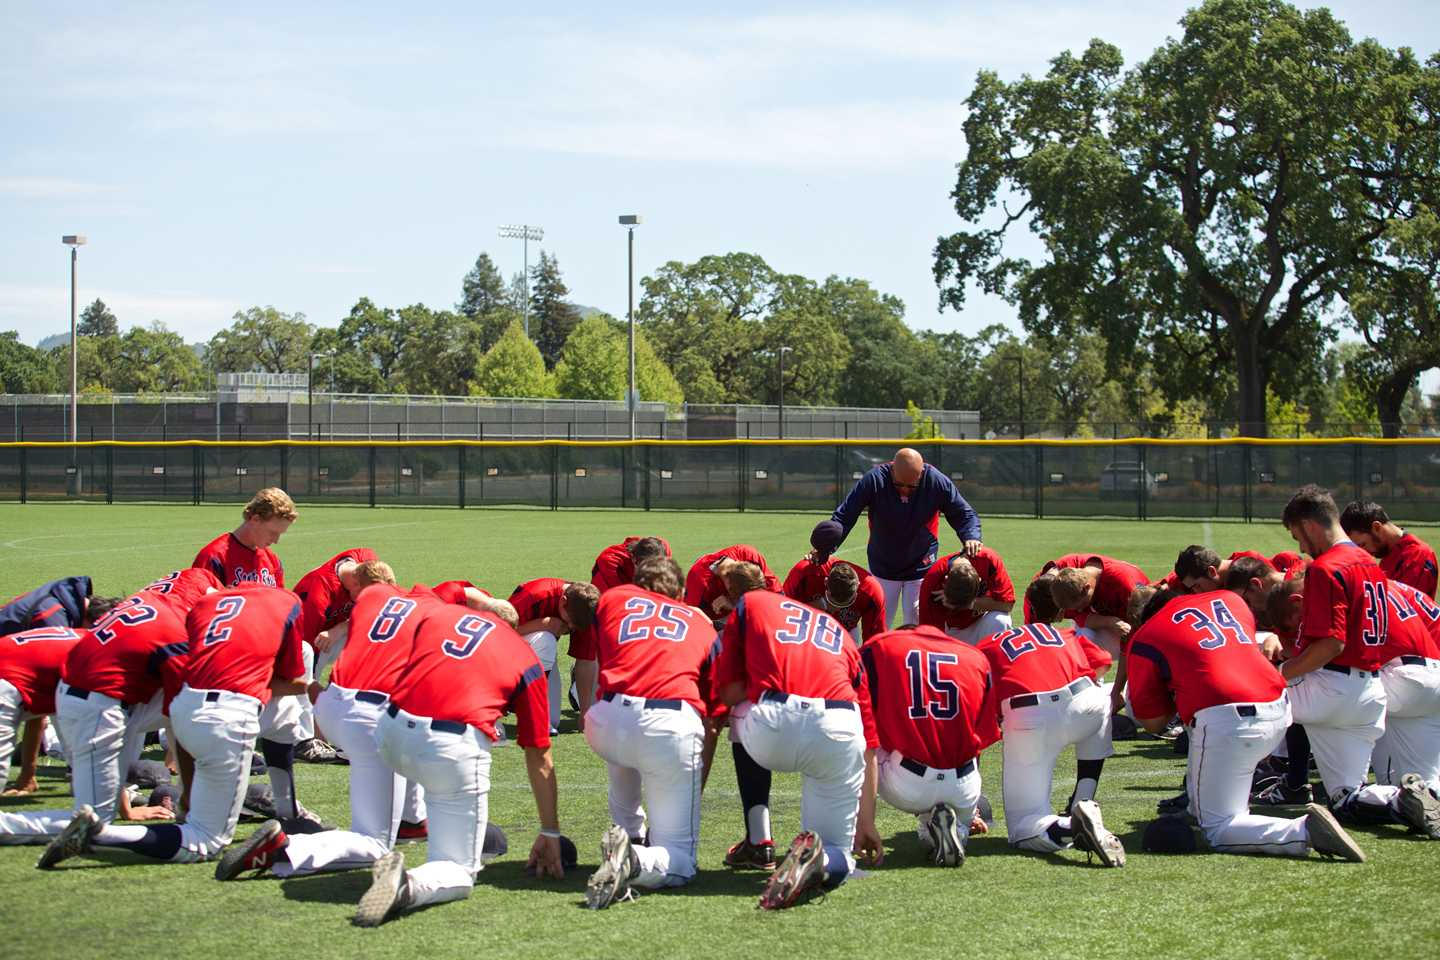 Tom Francois bows his head, along with SRJC Baseball in a moment of reflection before the final regular season game of 2015, against Sierra College April 24 at Sypher Field.